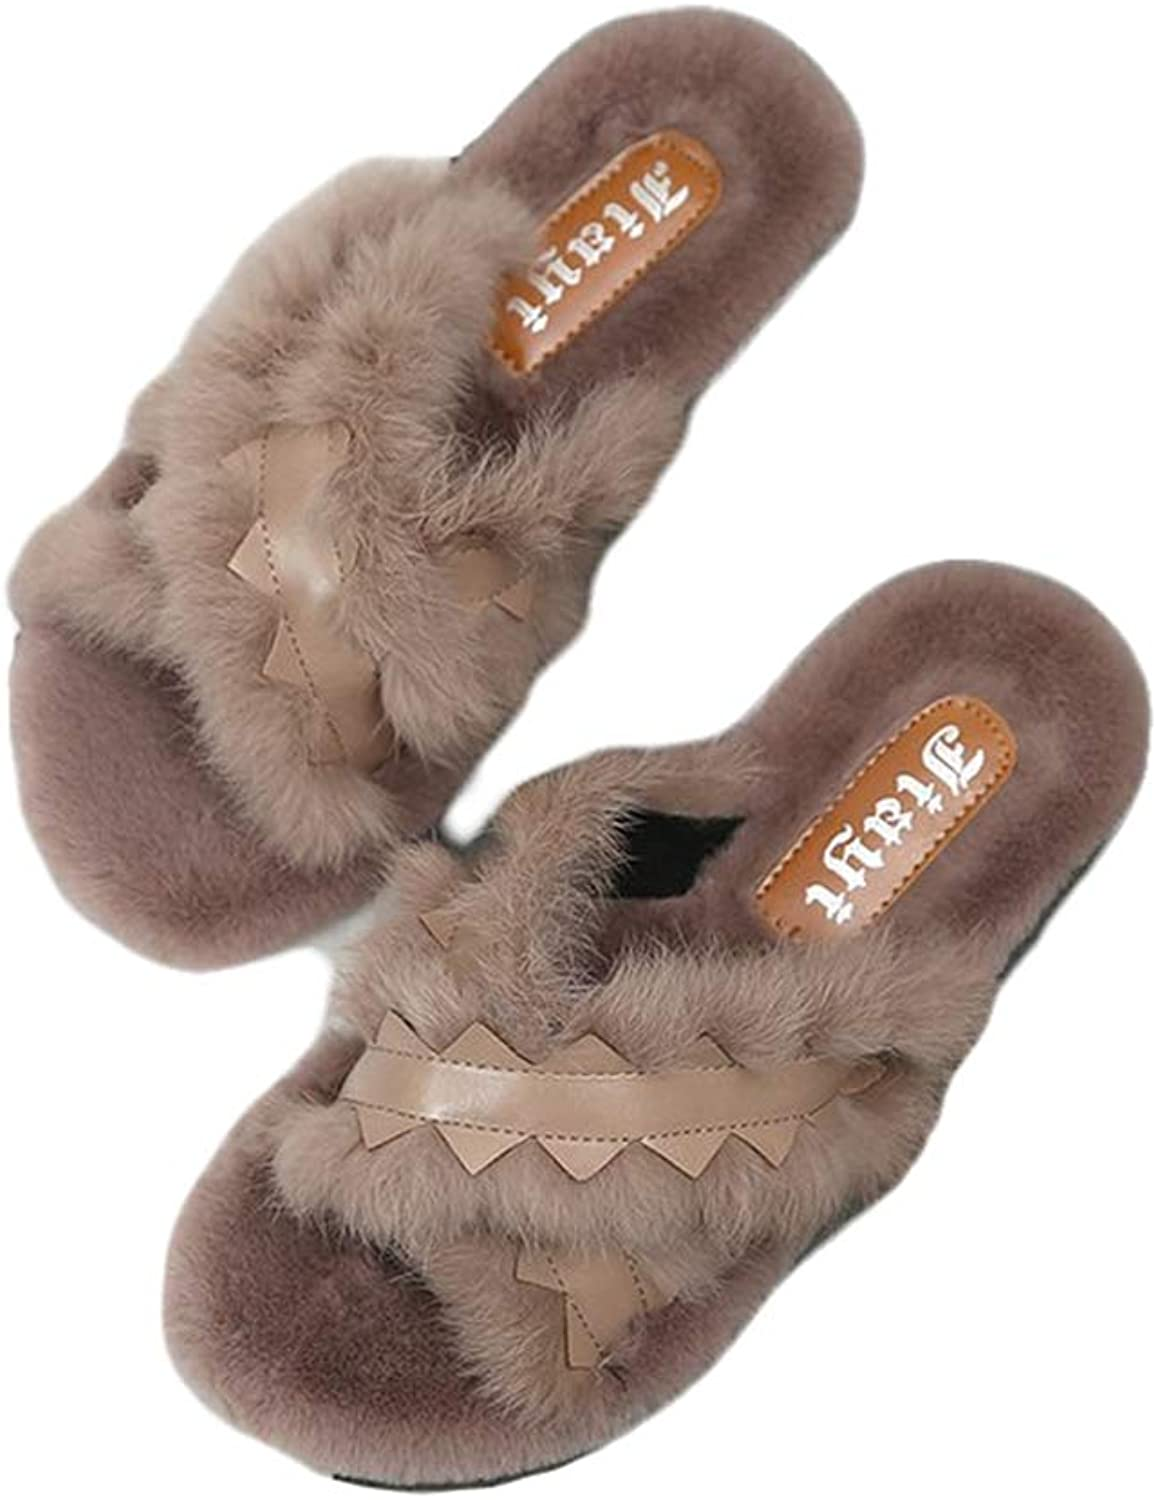 August Jim Women's Fluffy Flats shoes,Faux Fur Plush Warm Slippers House Slippers